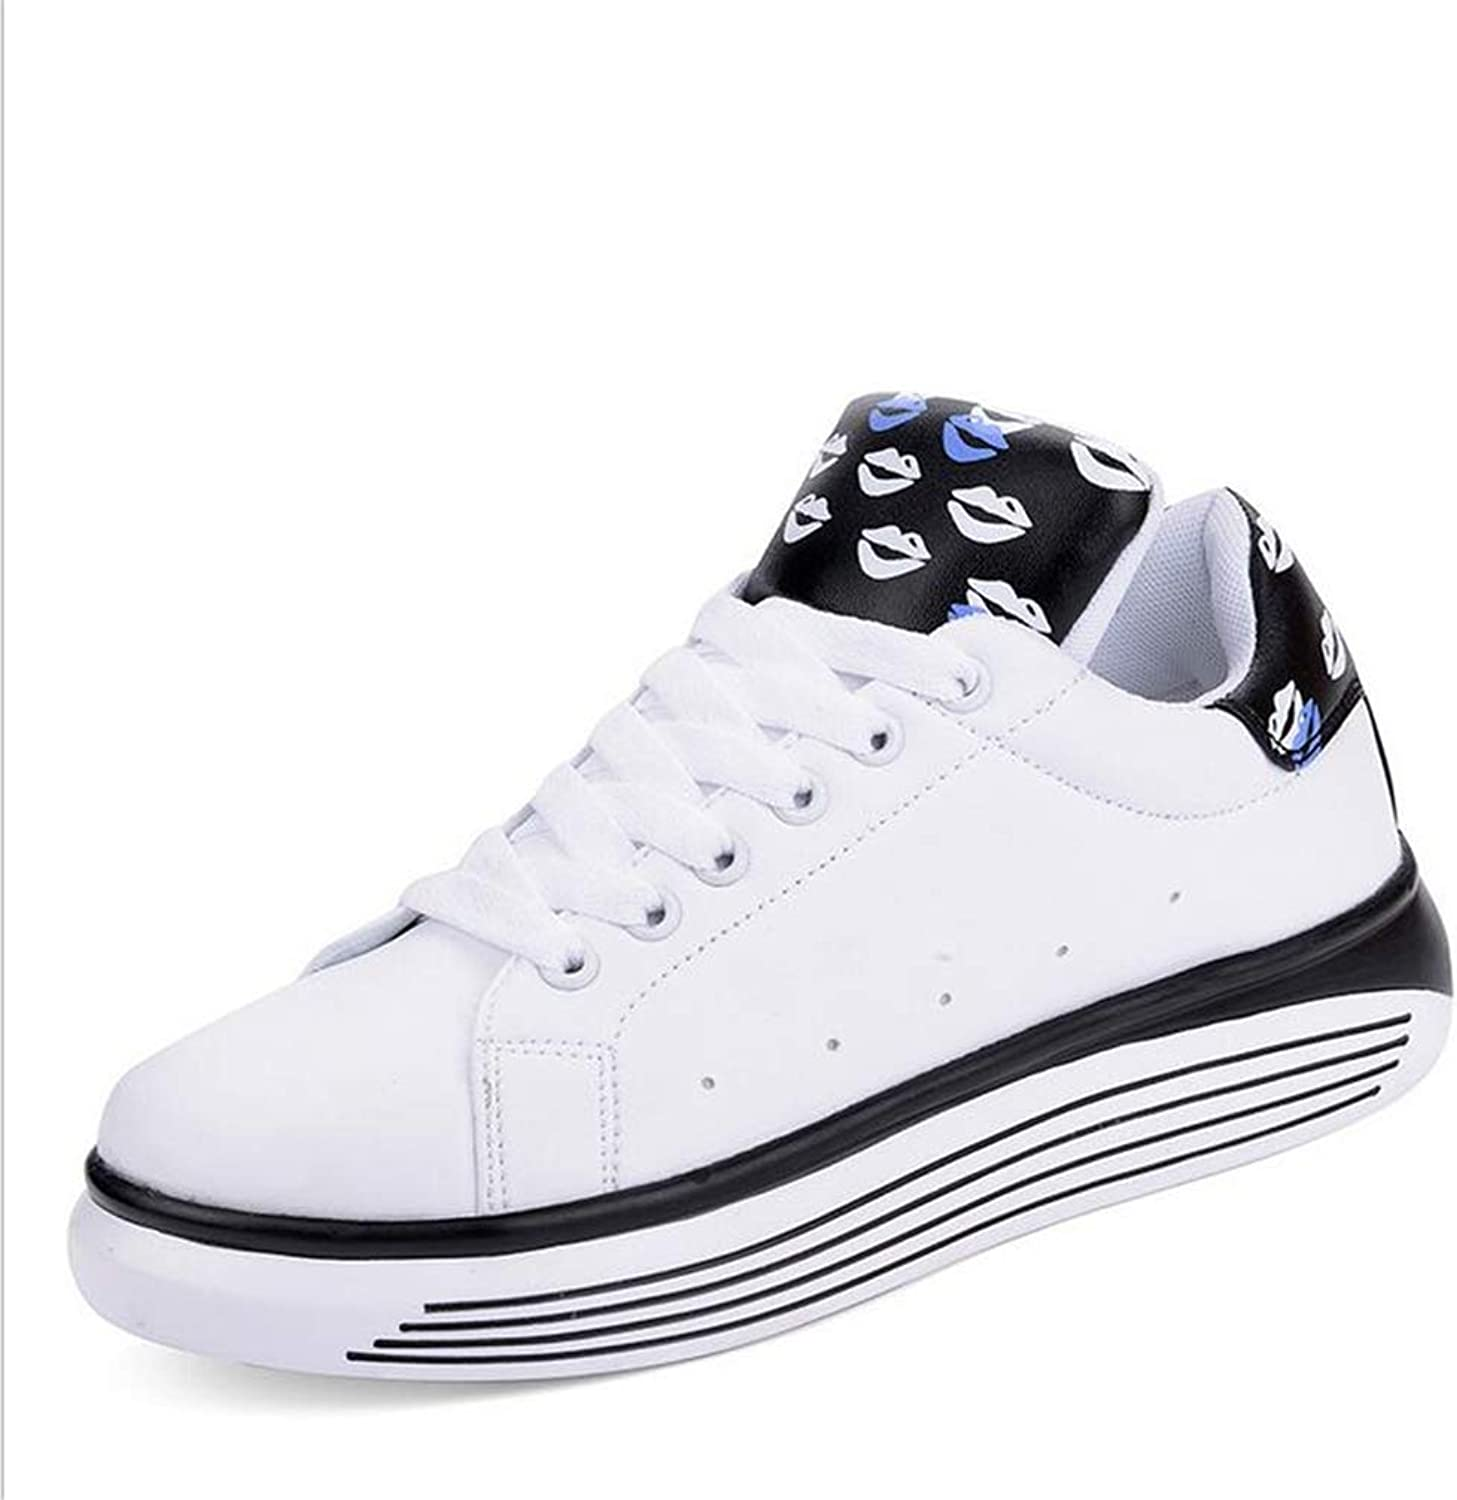 Womens's shoes Lace-up Deck shoes Little White shoes Ladies Microfiber Leather Academy Casual Sneakers